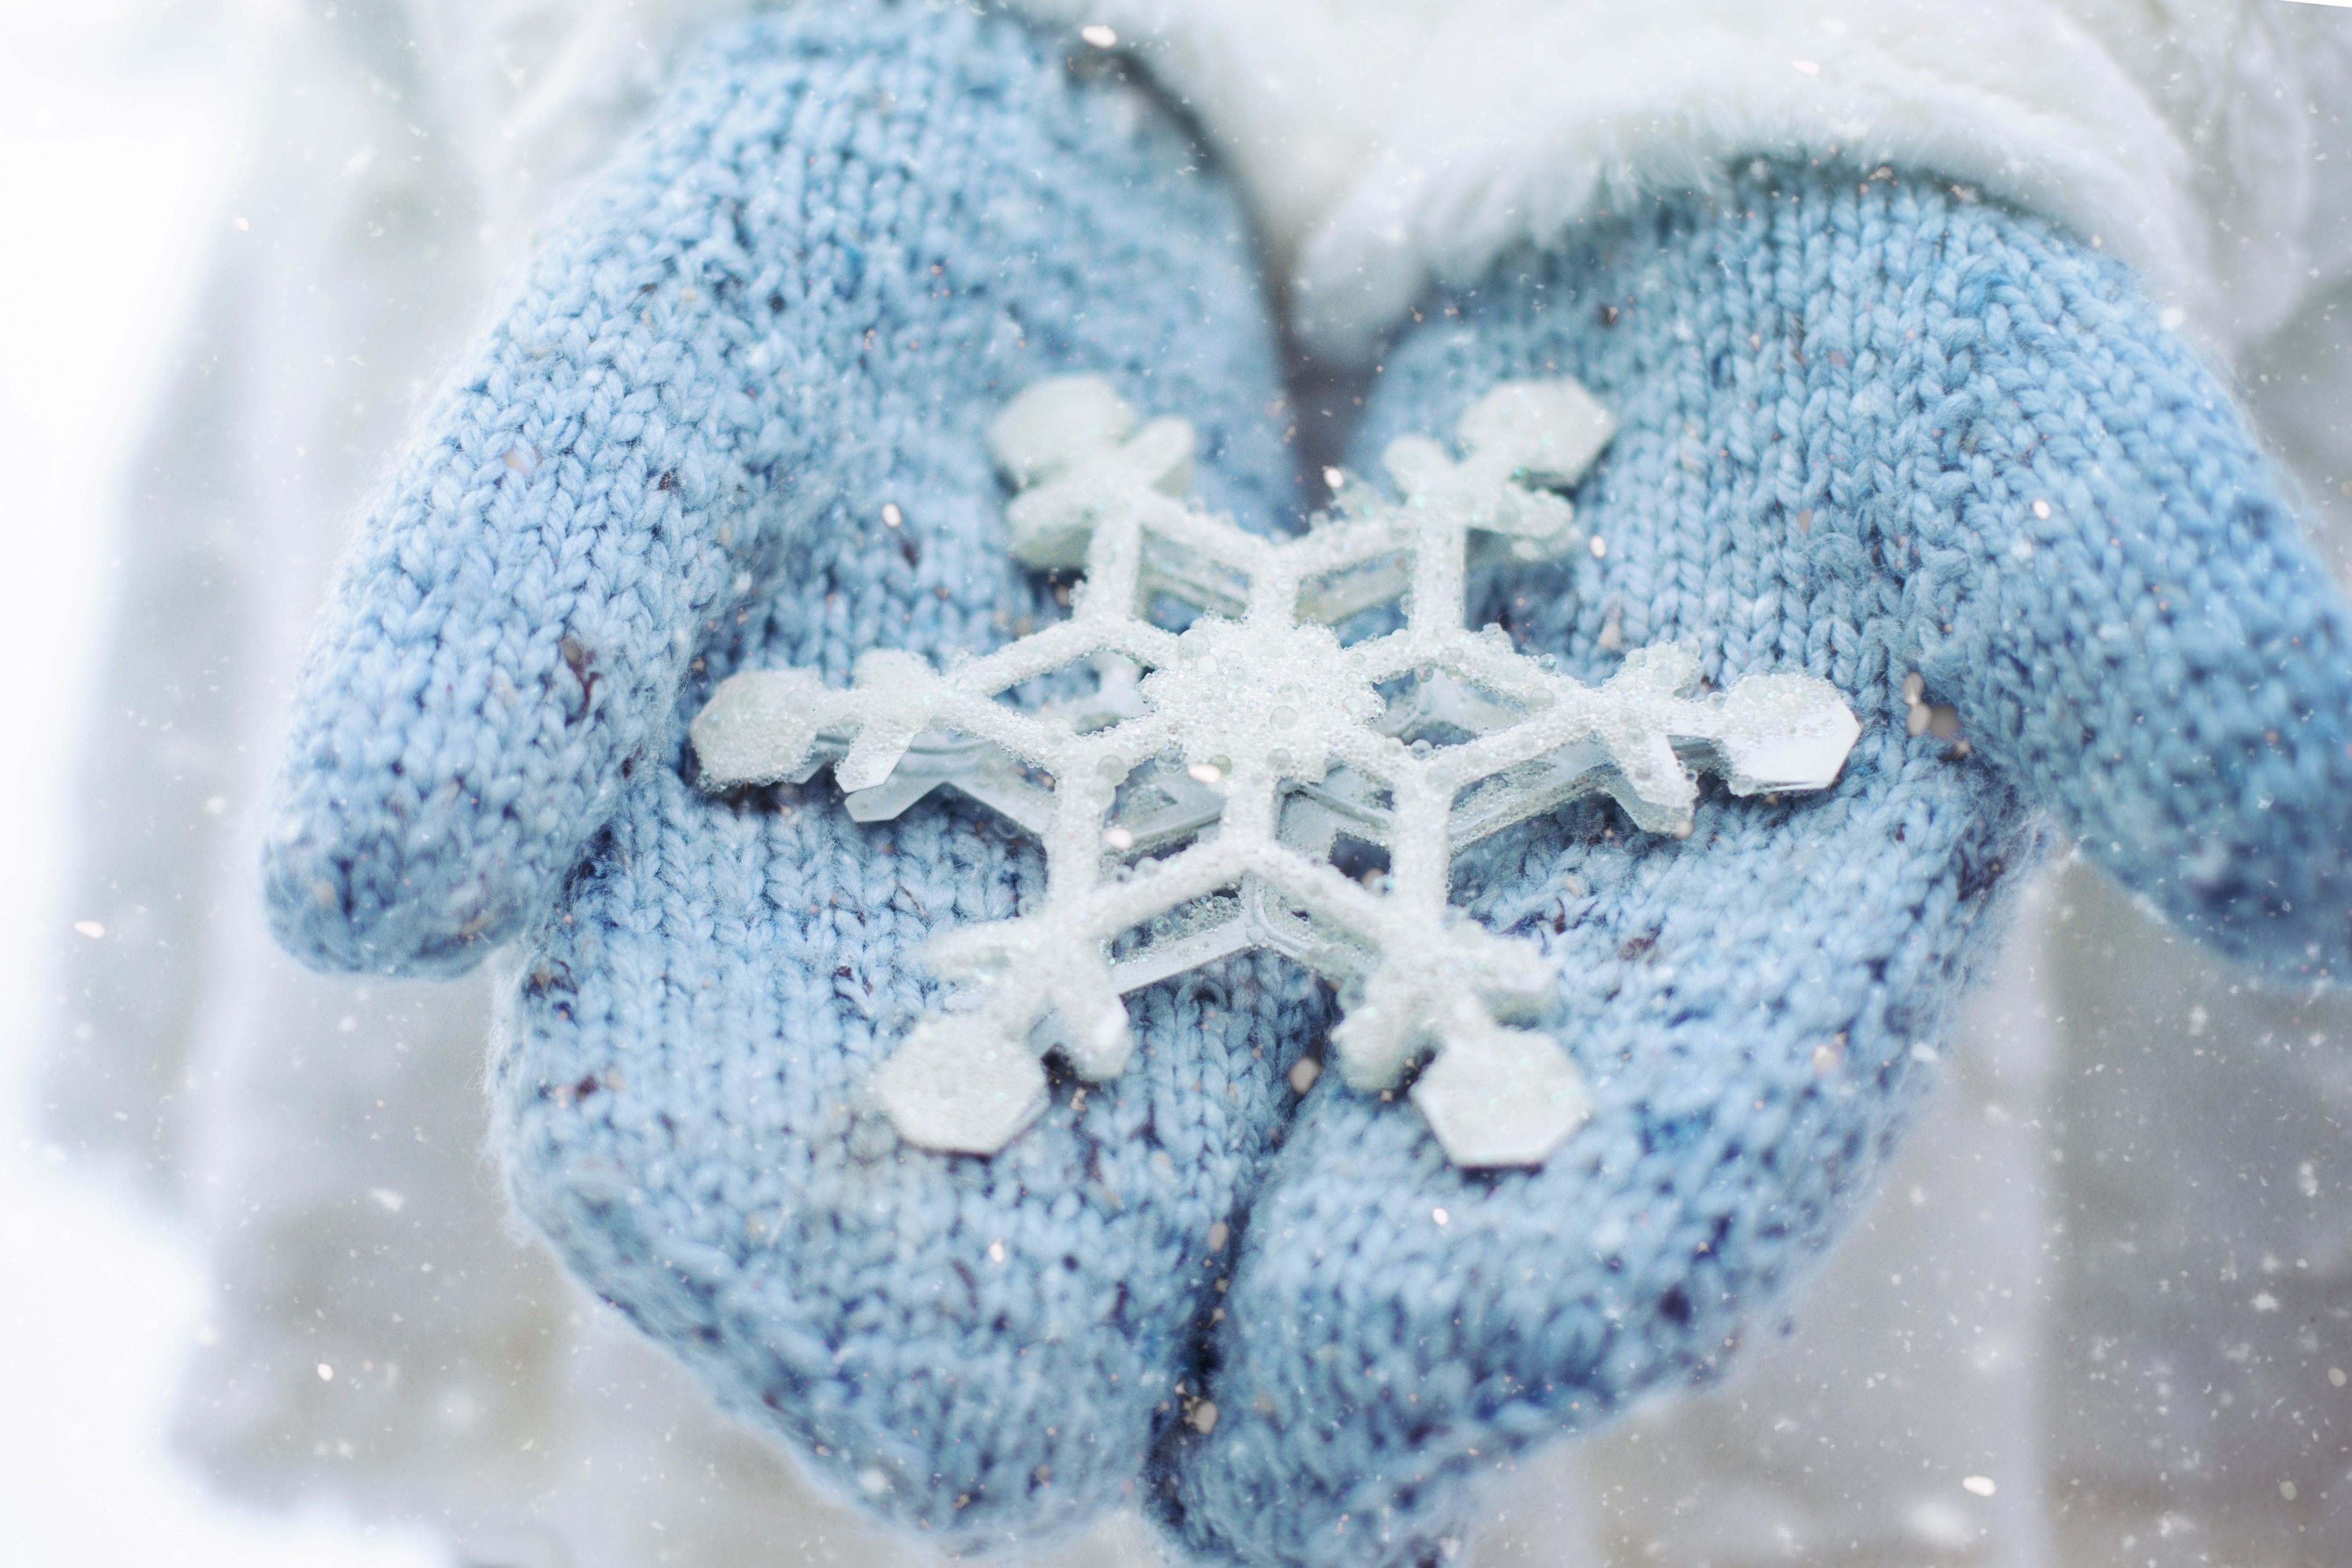 Stock Images hand, snowflake, winter, 5k, Stock Images #16882